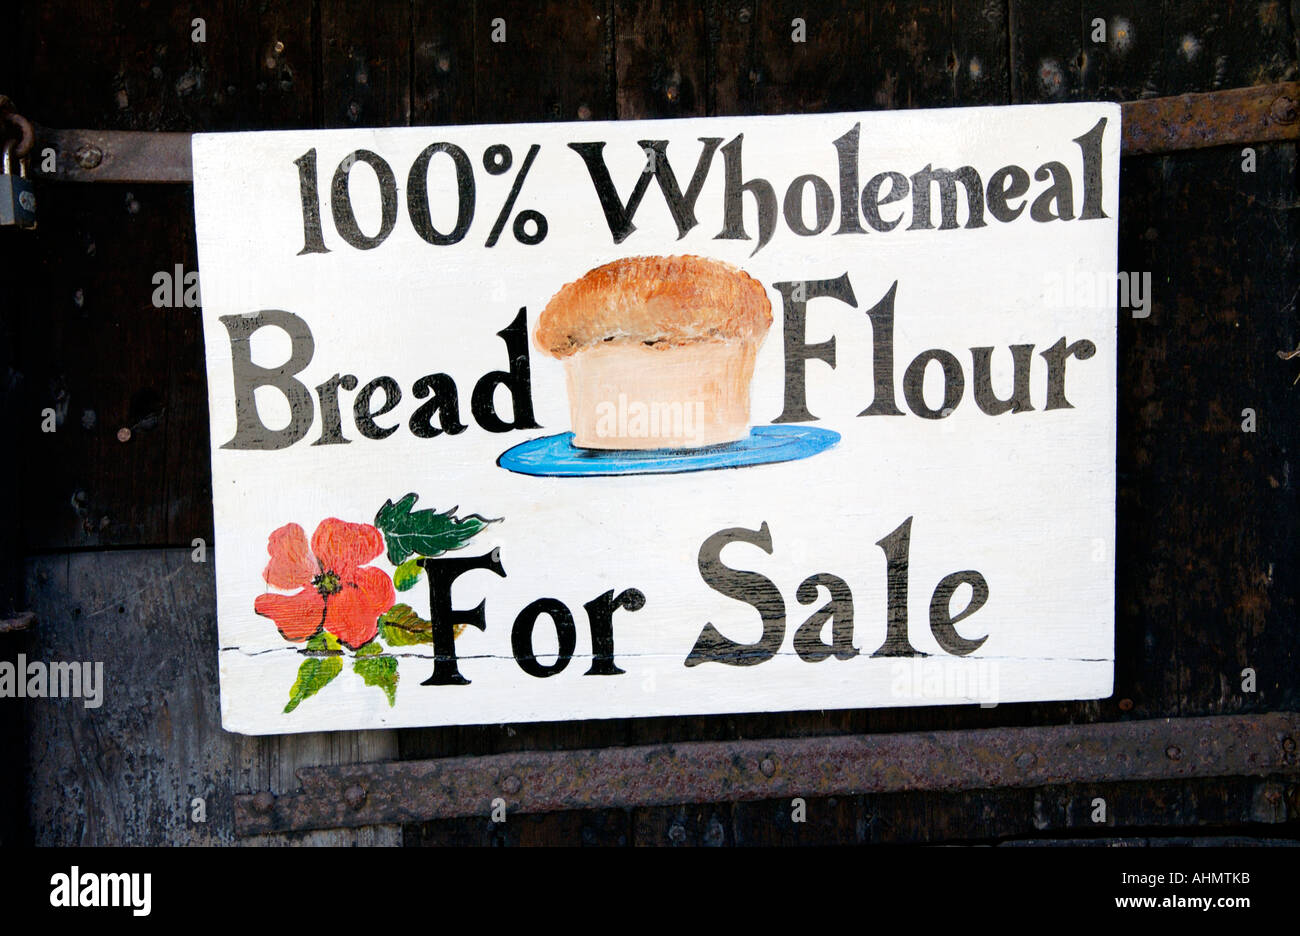 Stock Photo Wholemeal Bread Flour For Sale Sign At The 17th Century Y Felin Flour Mill At St Dogmaels Pembrokeshire West Wales Uk